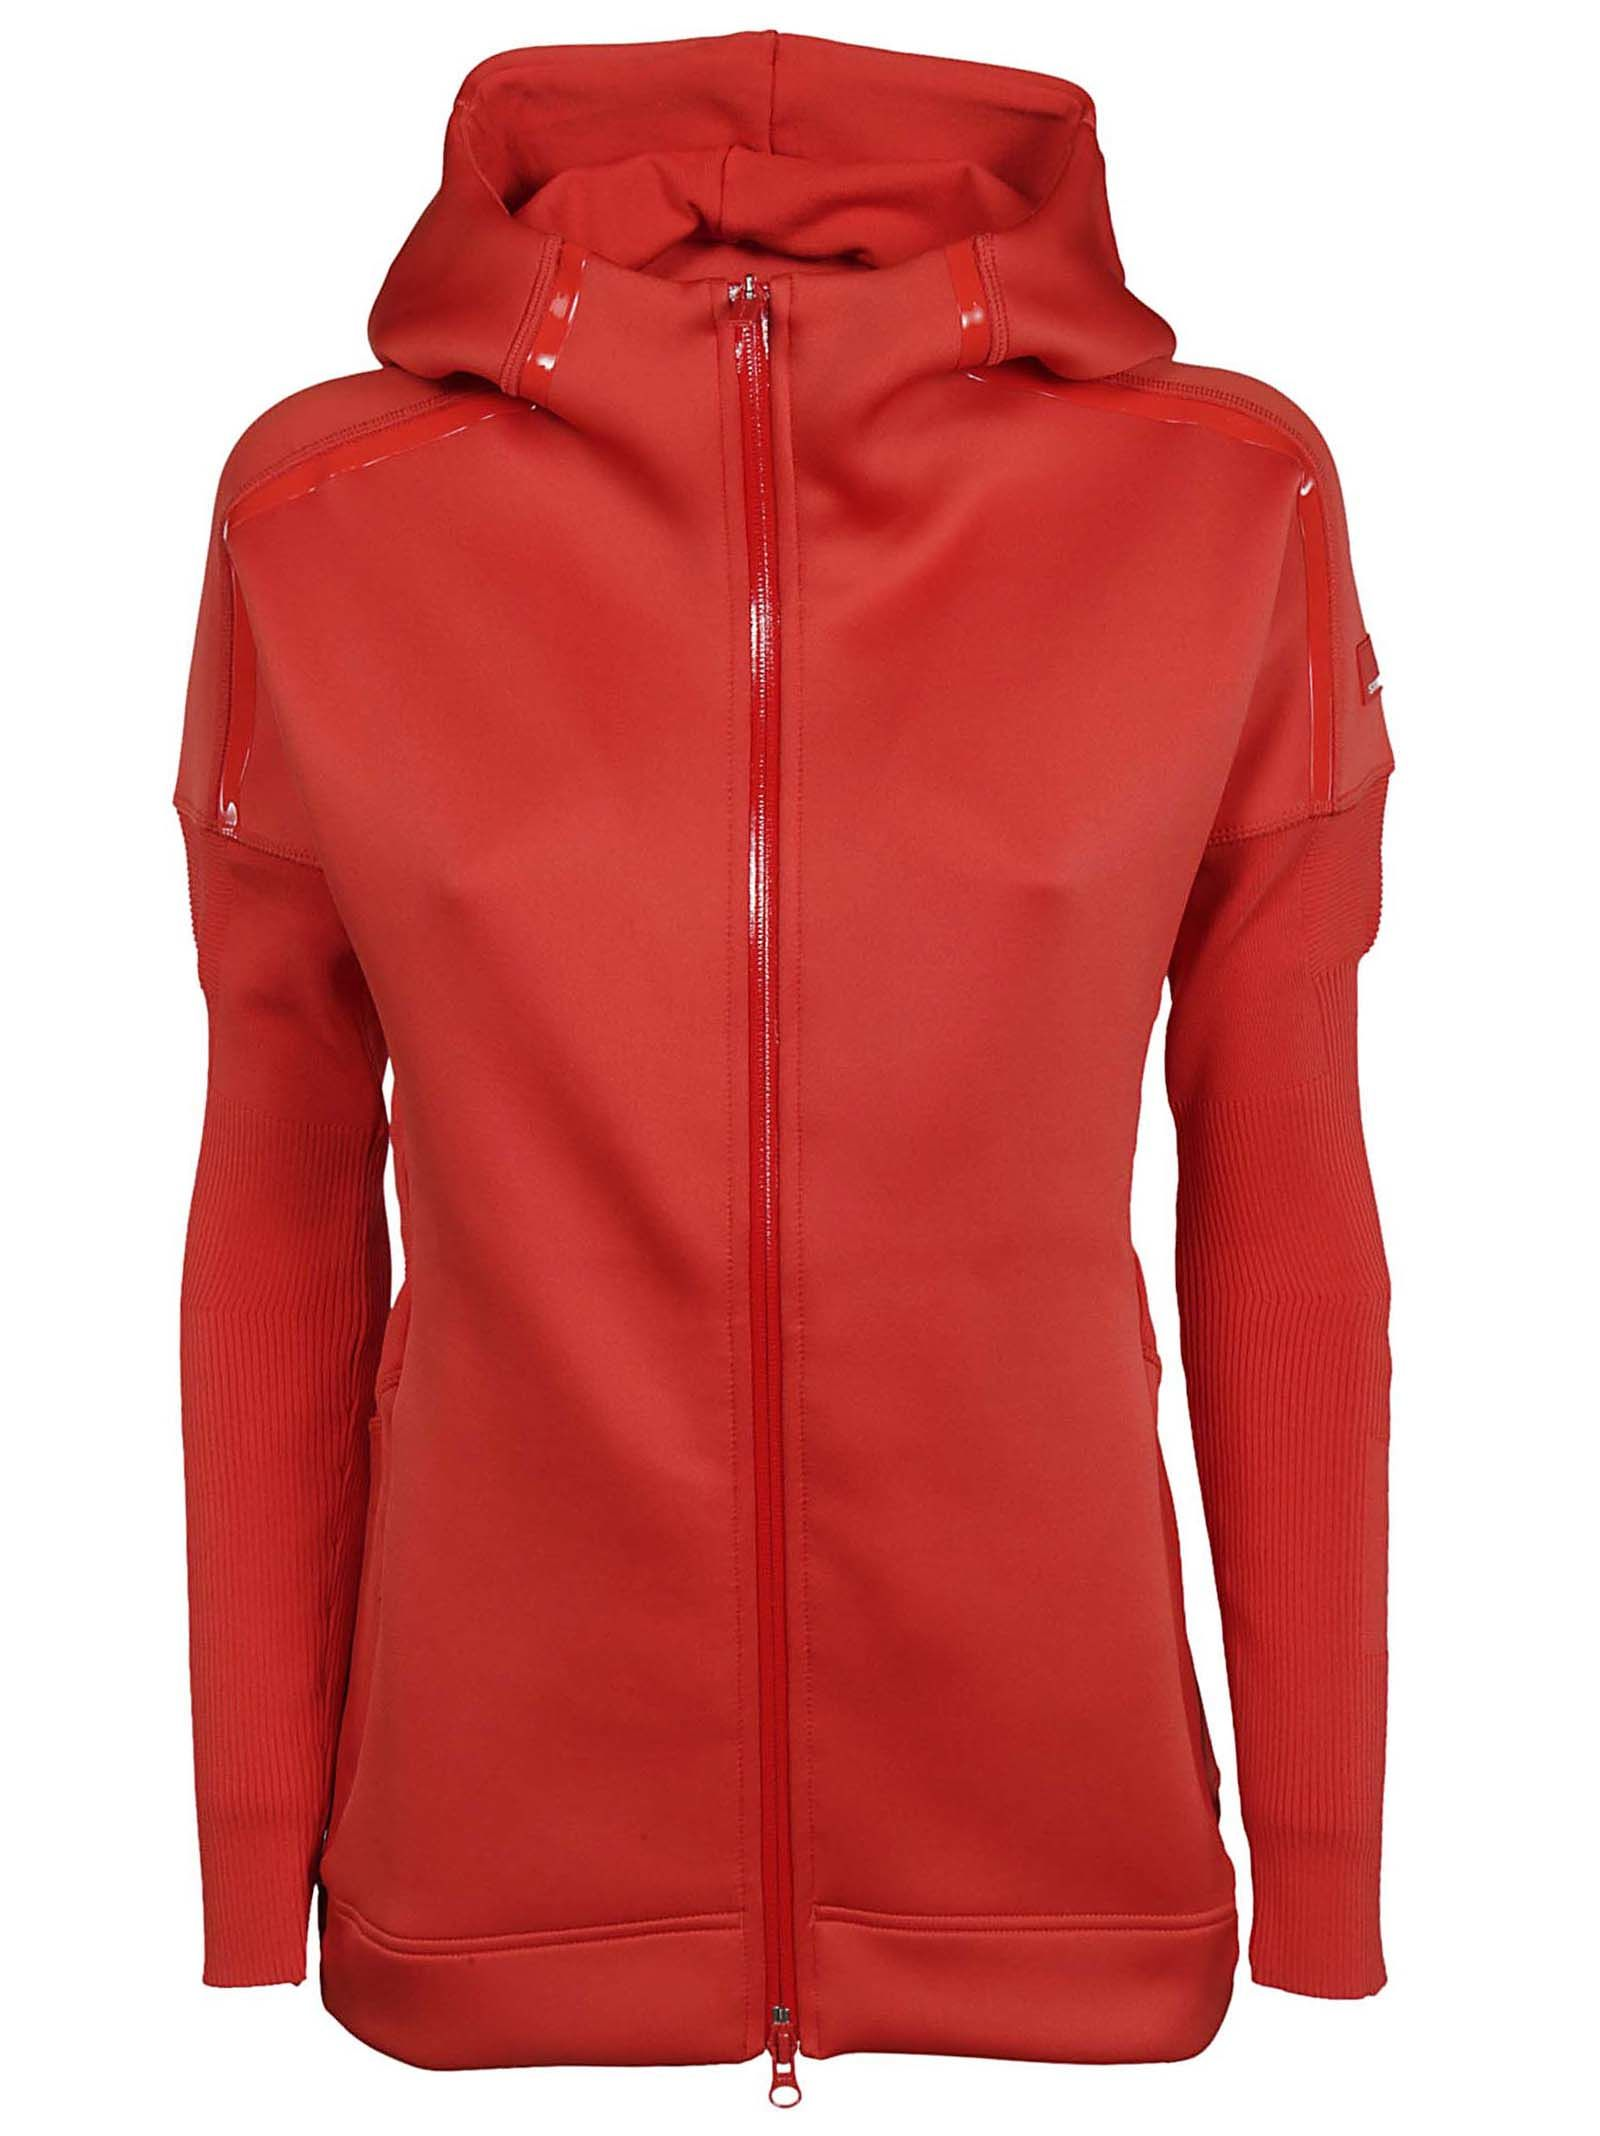 ADIDAS BY STELLA MCCARTNEY FITTED HOODIE from Italist.com